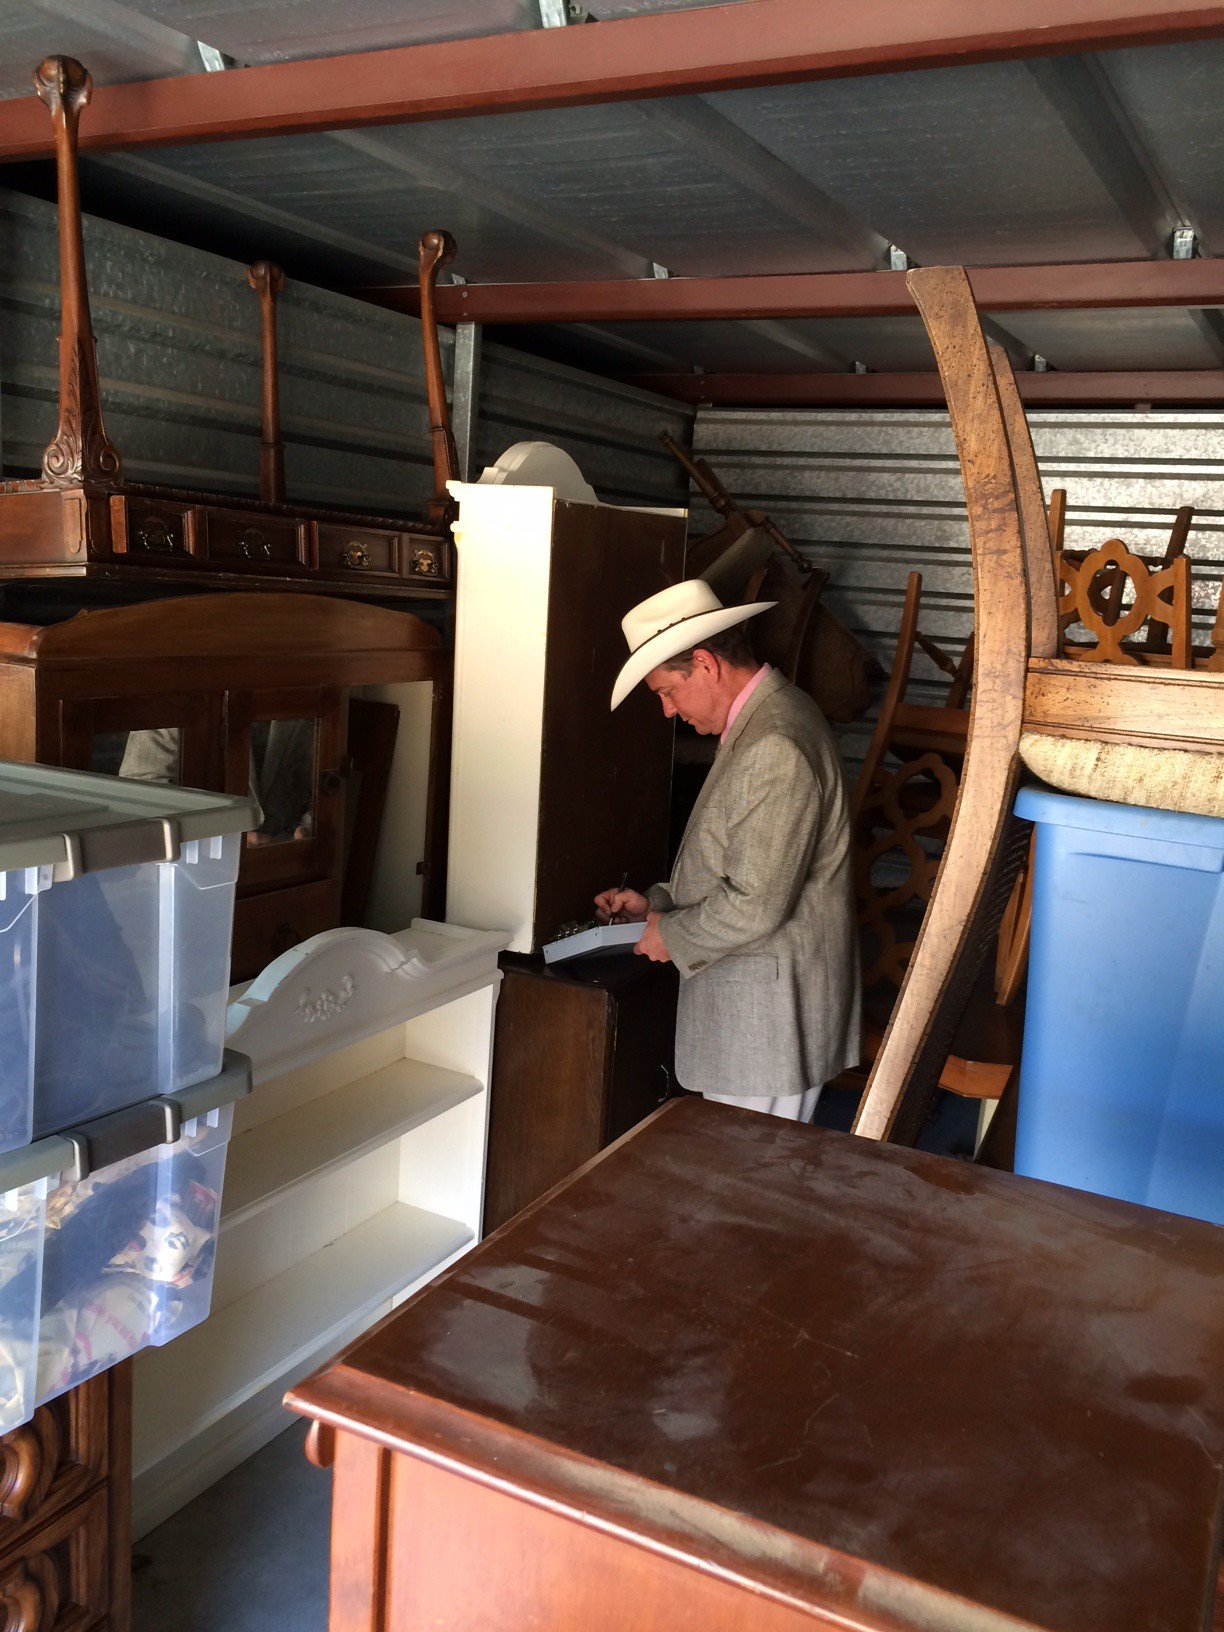 Beau Parker County Sheriffu0027s Sgt. Randy Branum Inventories One Of Three Storage  Units Filled With Stolen Antique Furniture.